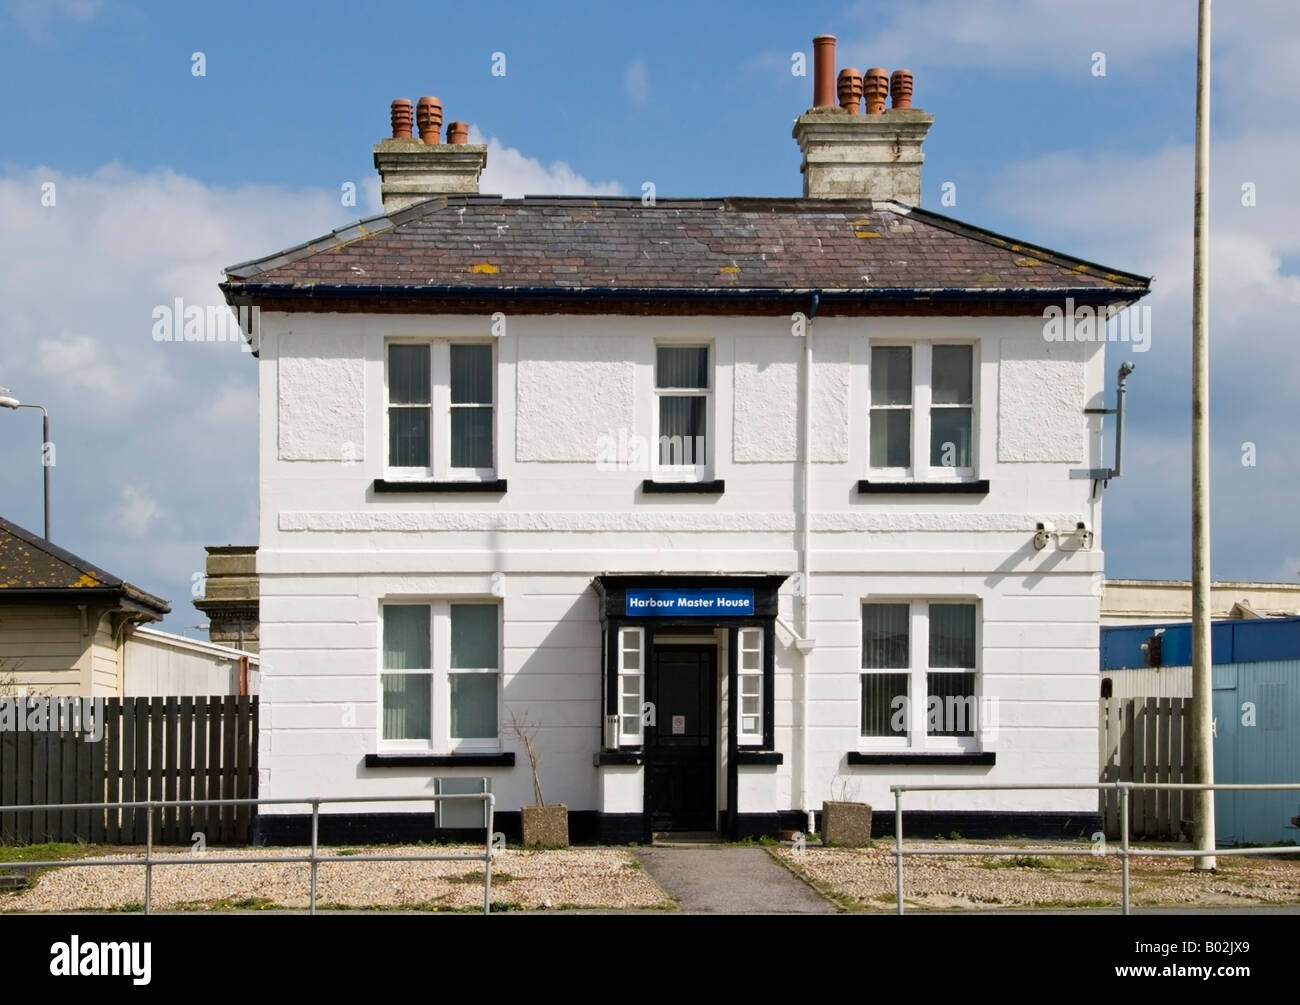 The Harbourmaster's House at Folkestone Harbour, Kent, UK. - Stock Image